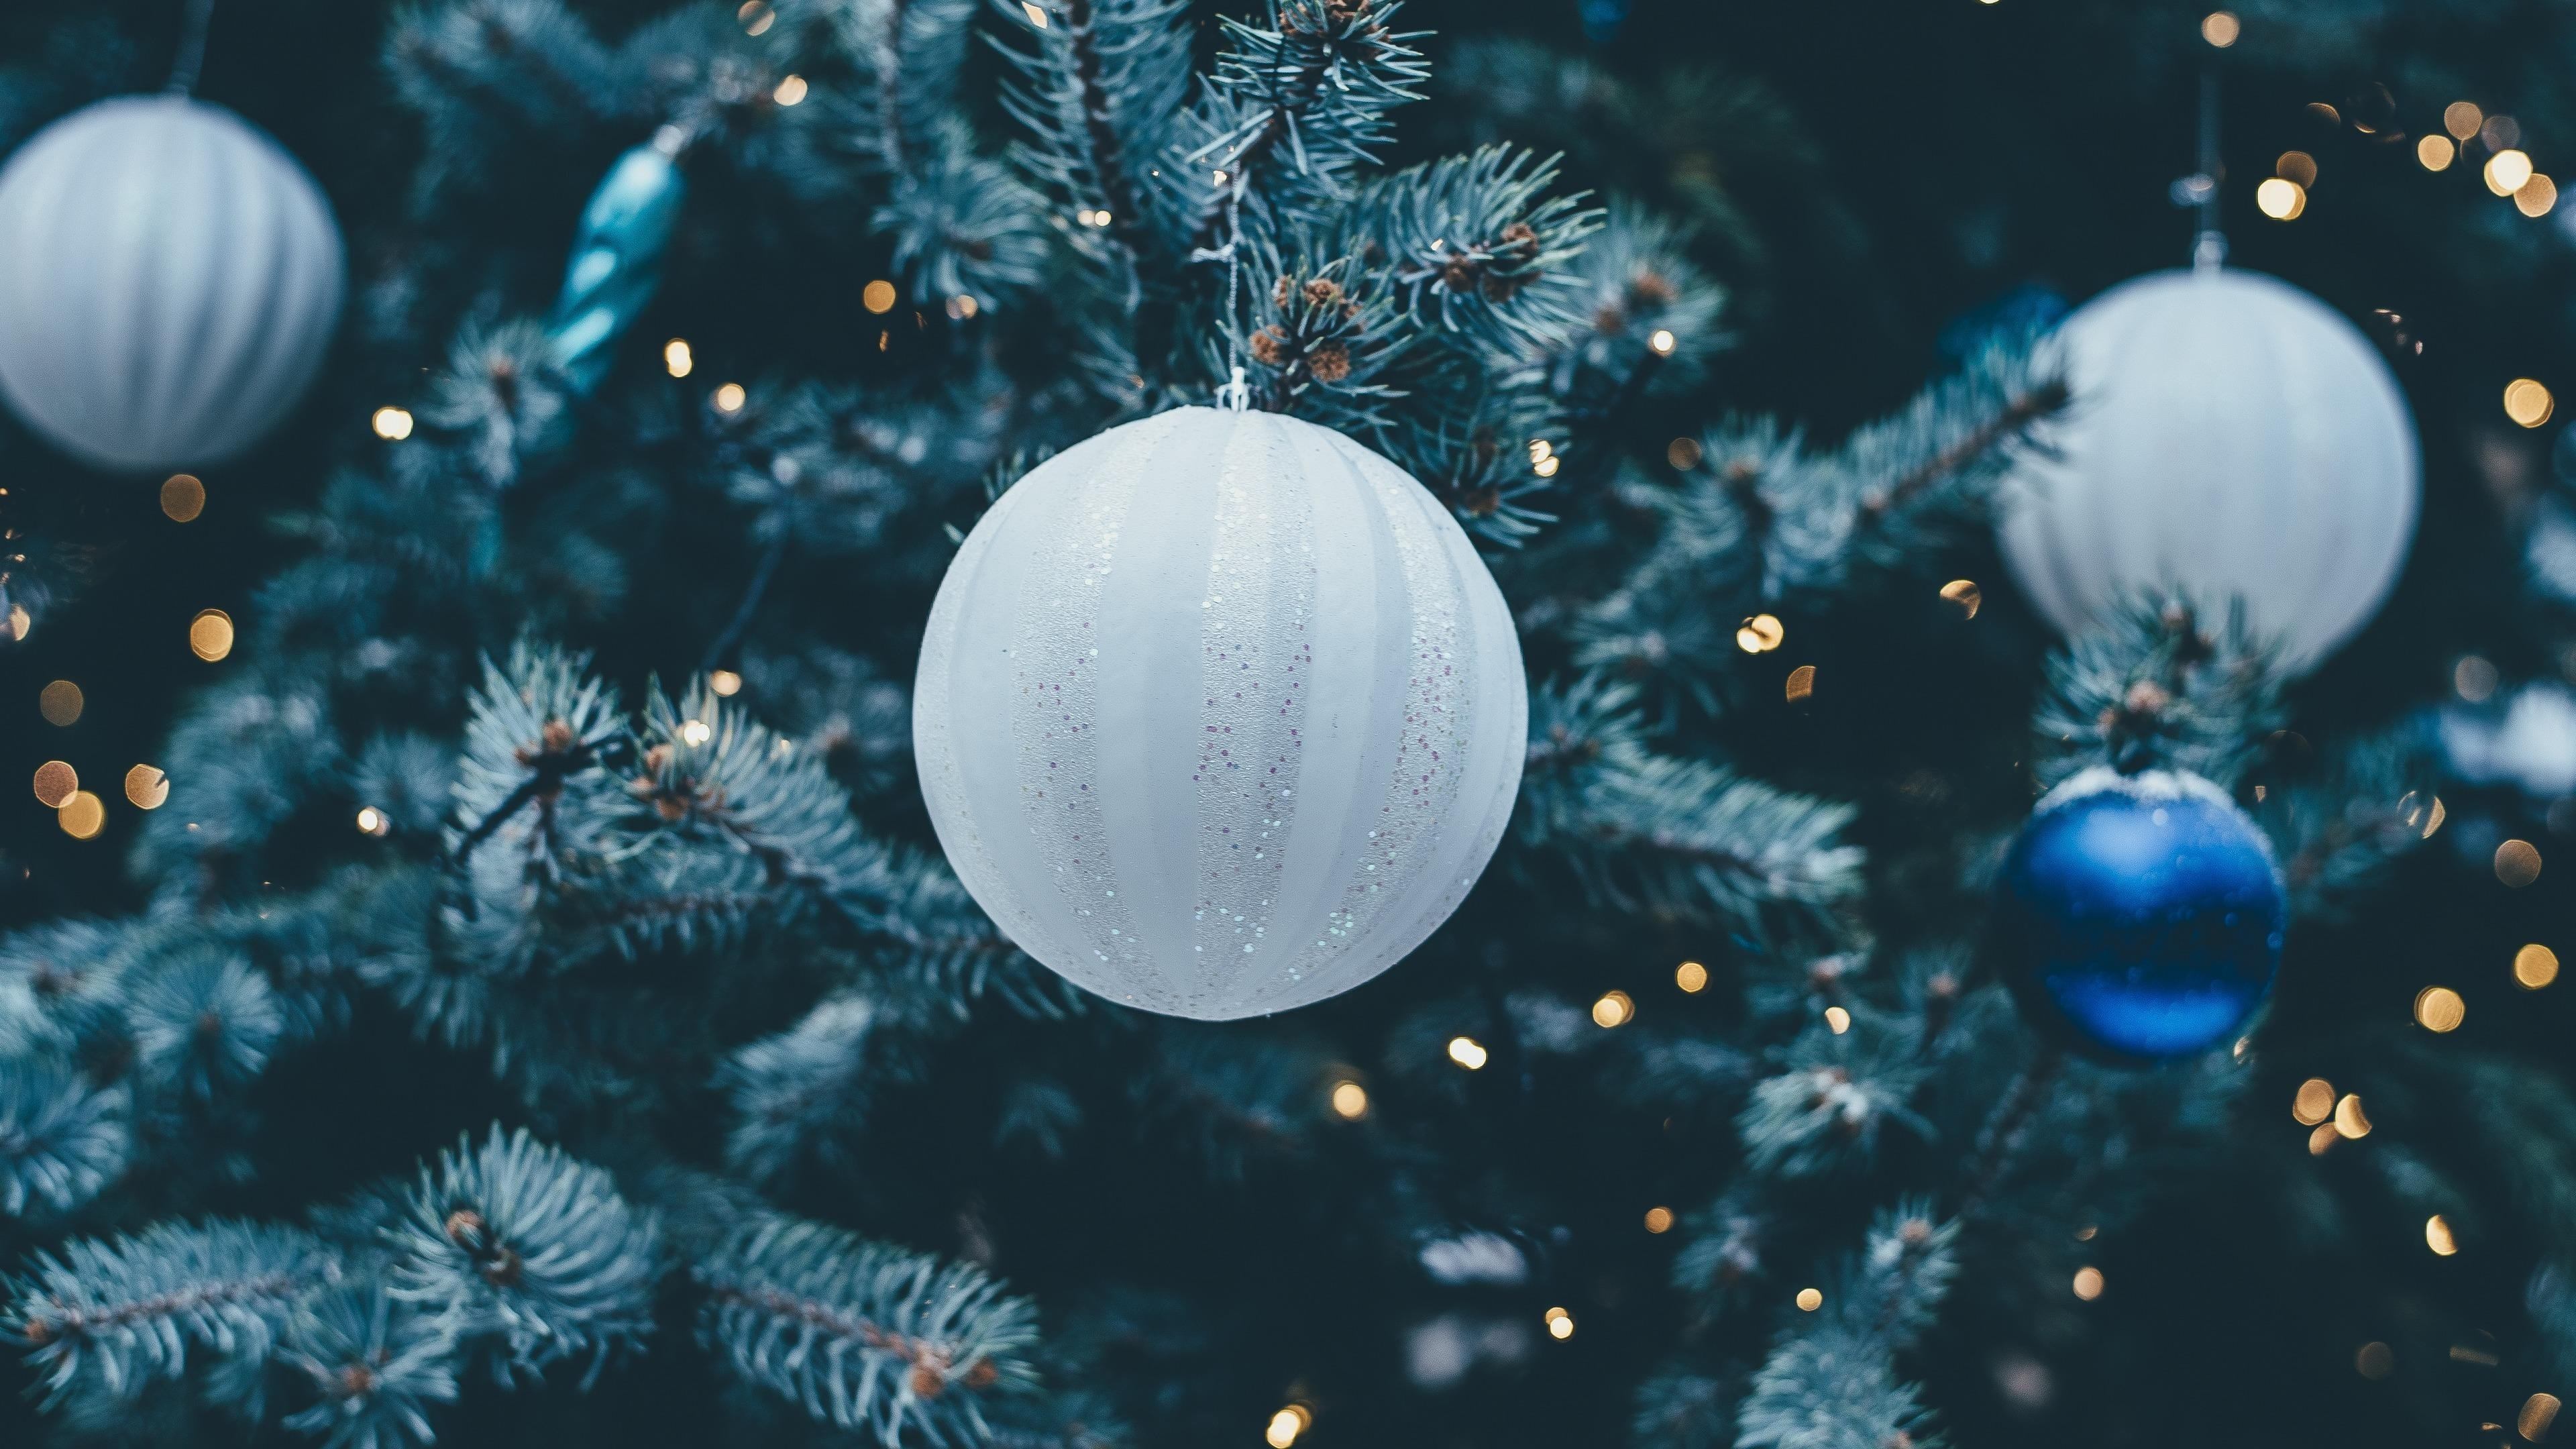 Decorations on Christmas Tree wallpaper